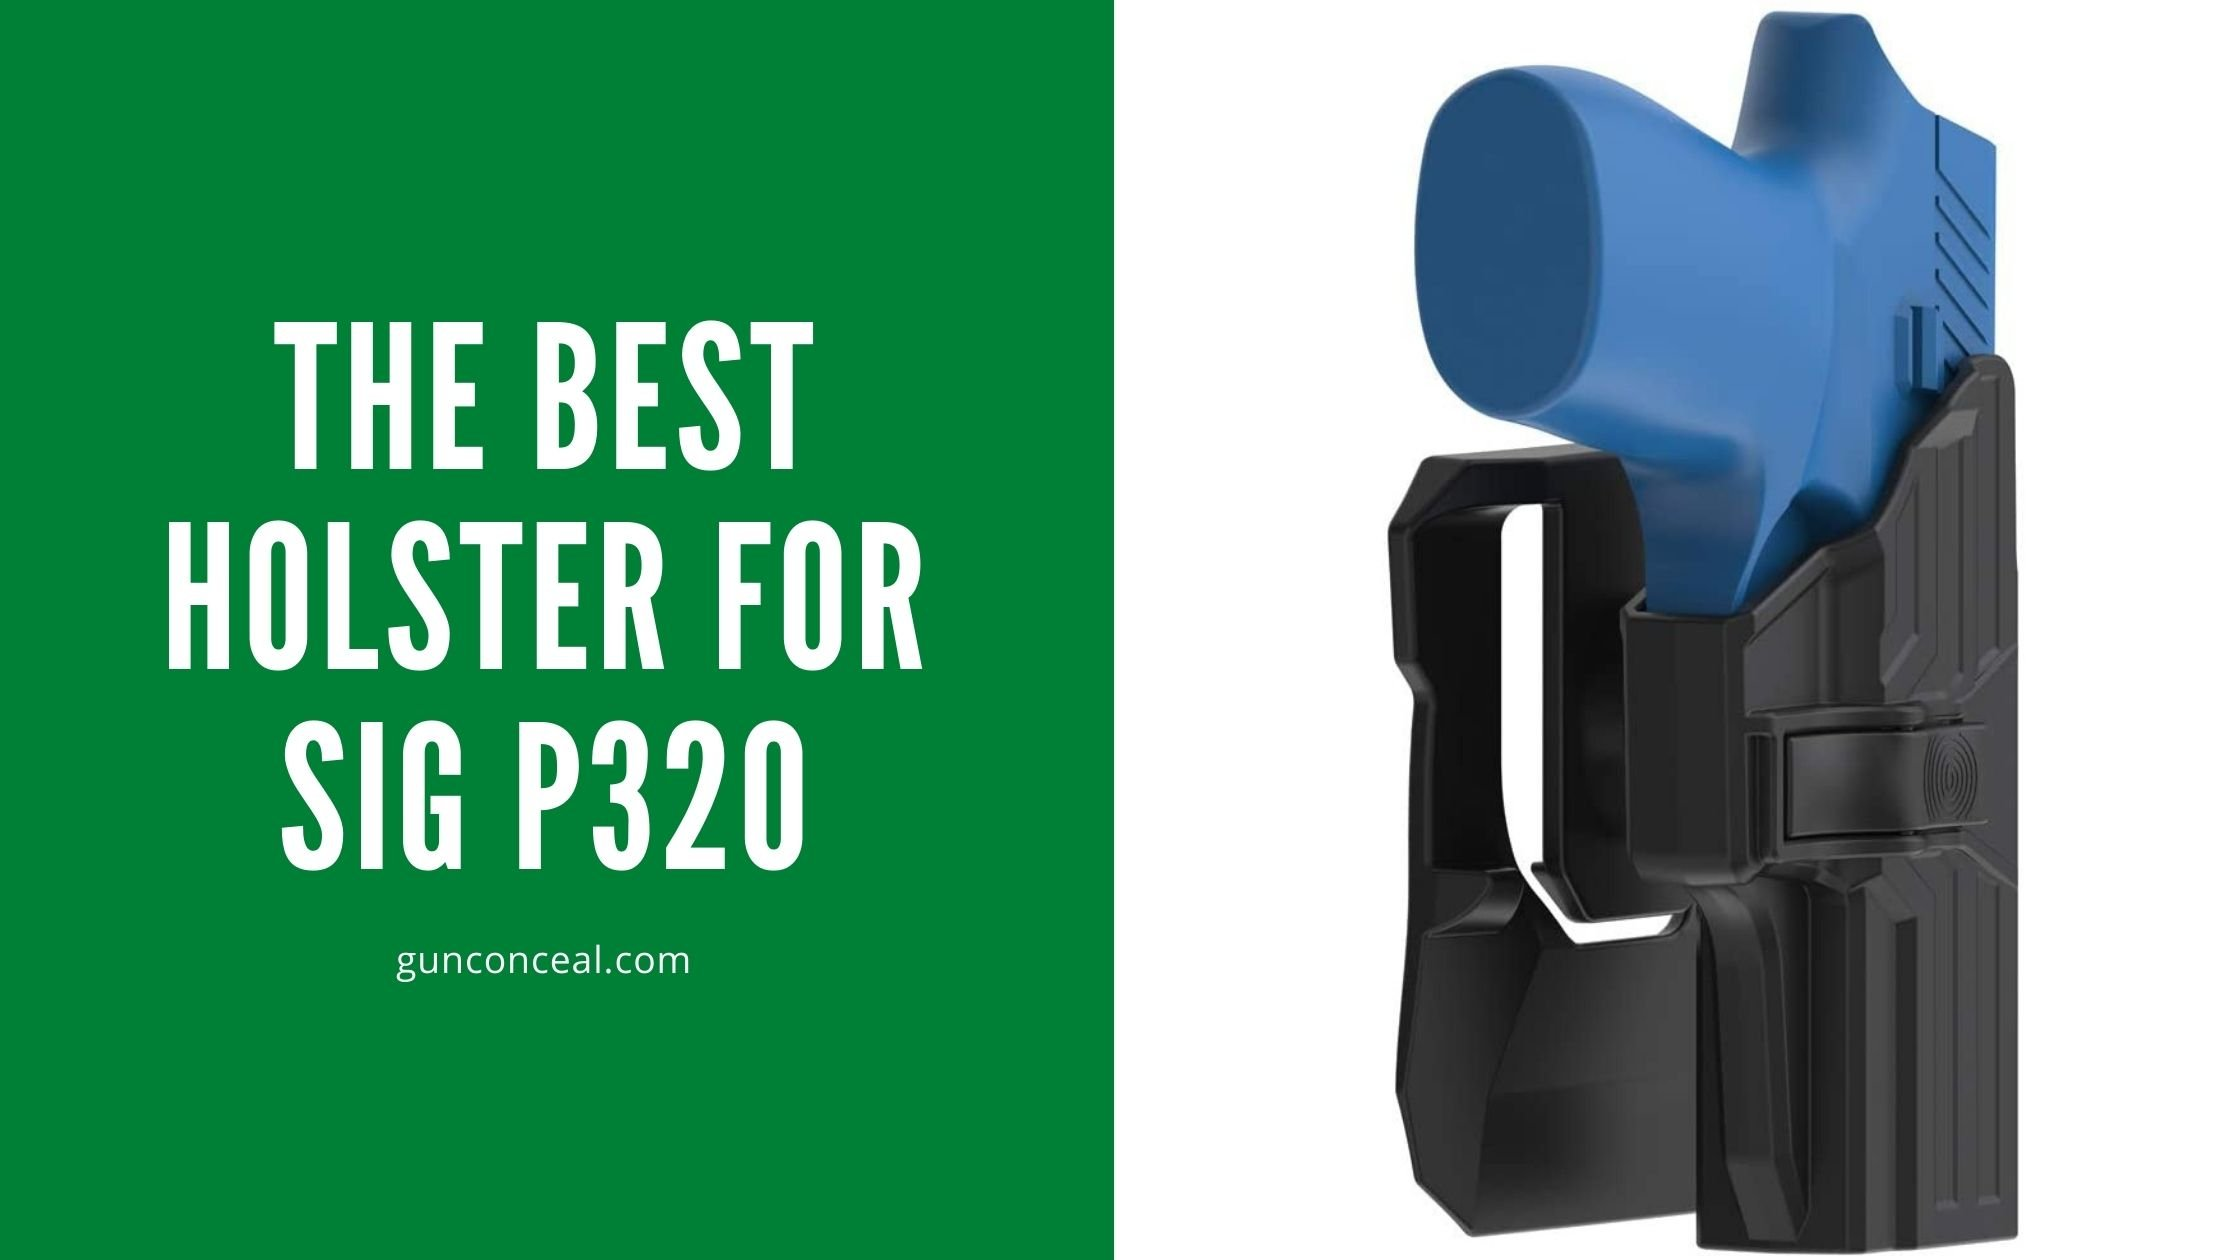 The Best Holster for Sig P320